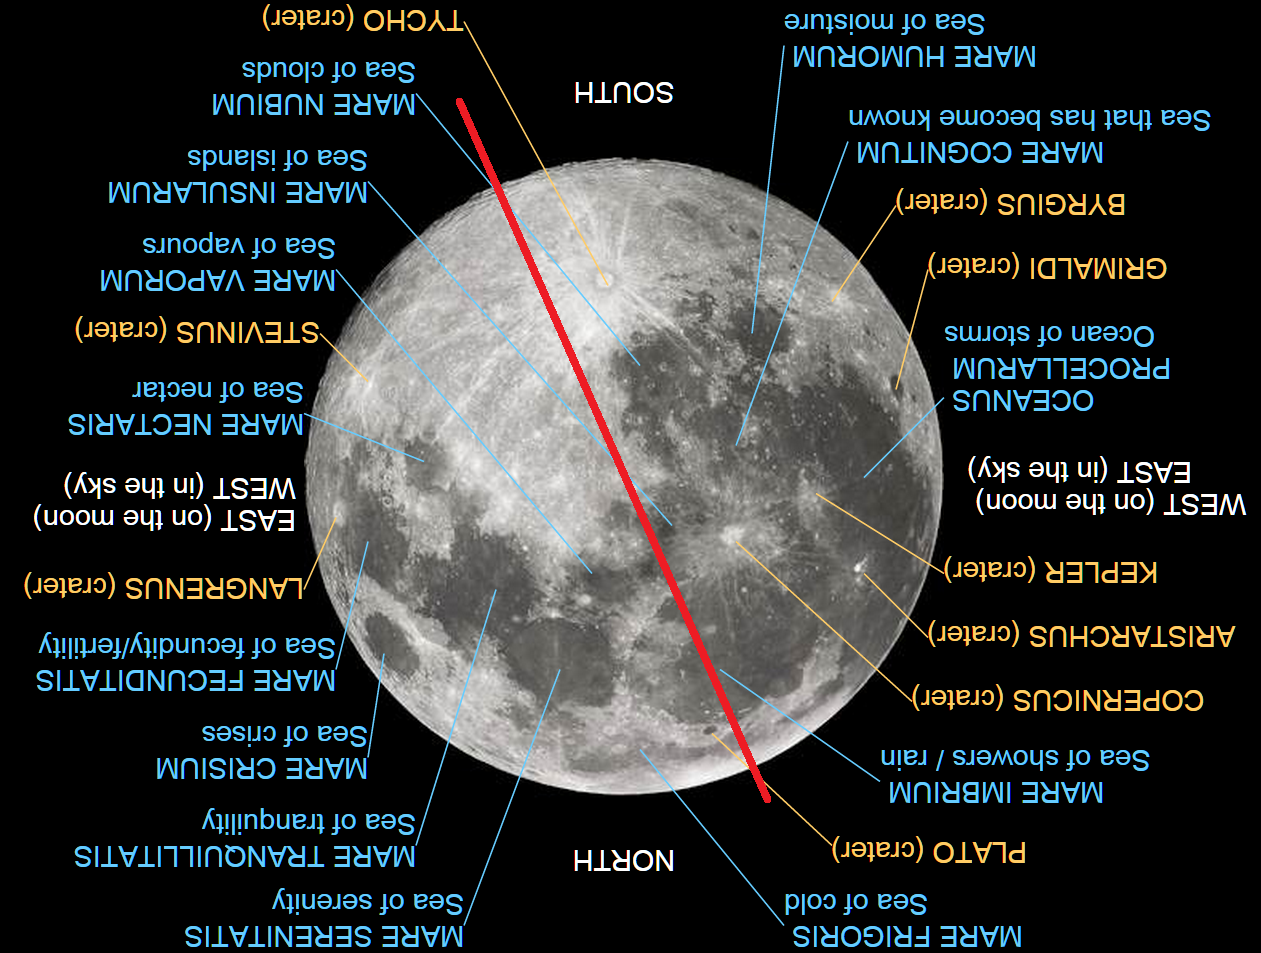 Your image is upside down | Moon map, Super moon, Craters of ...